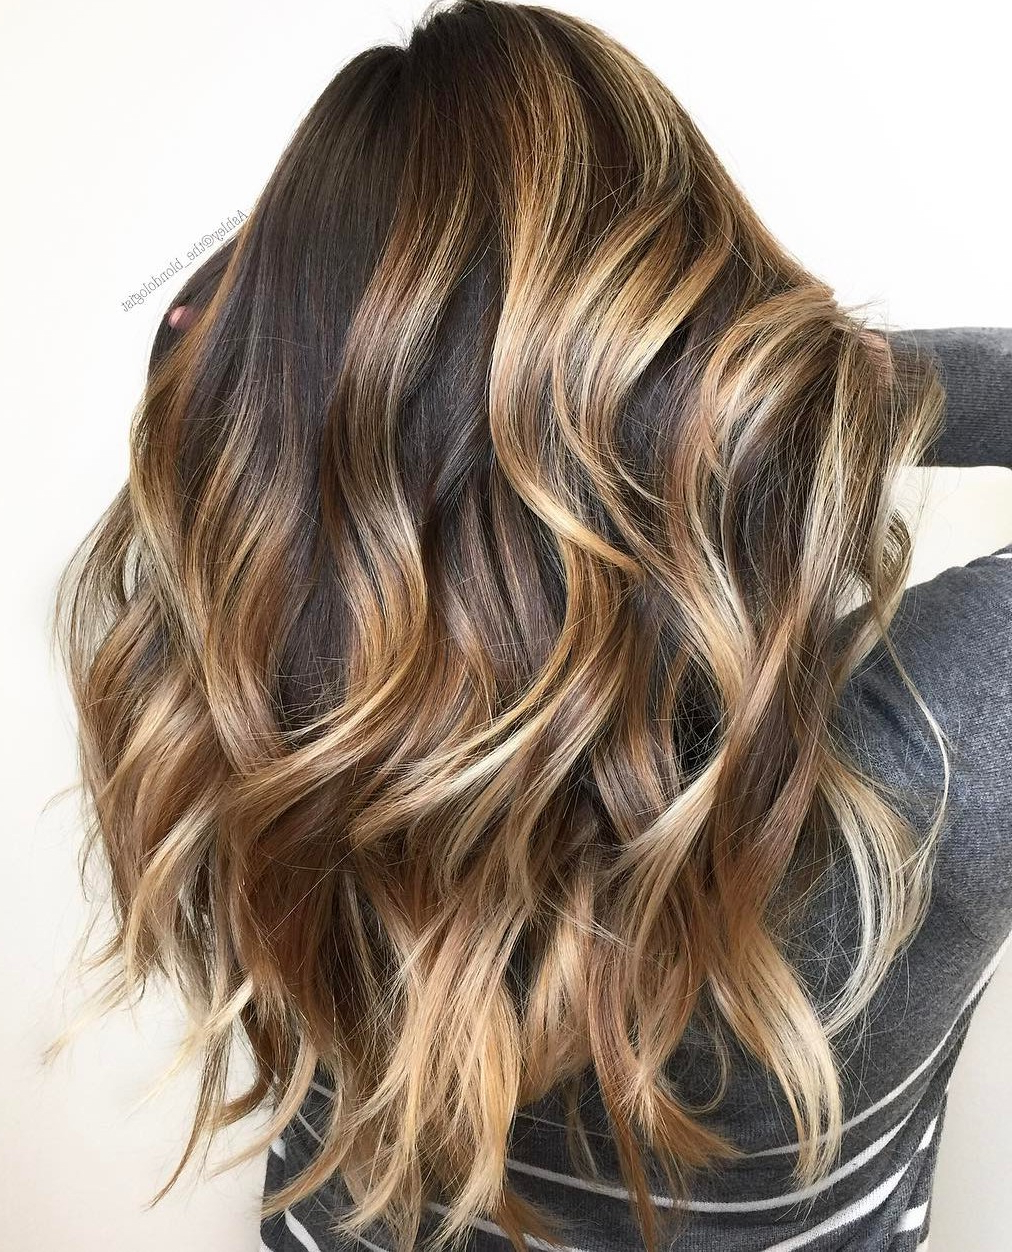 Hairstyles And Haircuts For Thick Hair In 2018 — Therighthairstyles Throughout Most Popular Medium Haircuts Thick Hair (View 12 of 20)